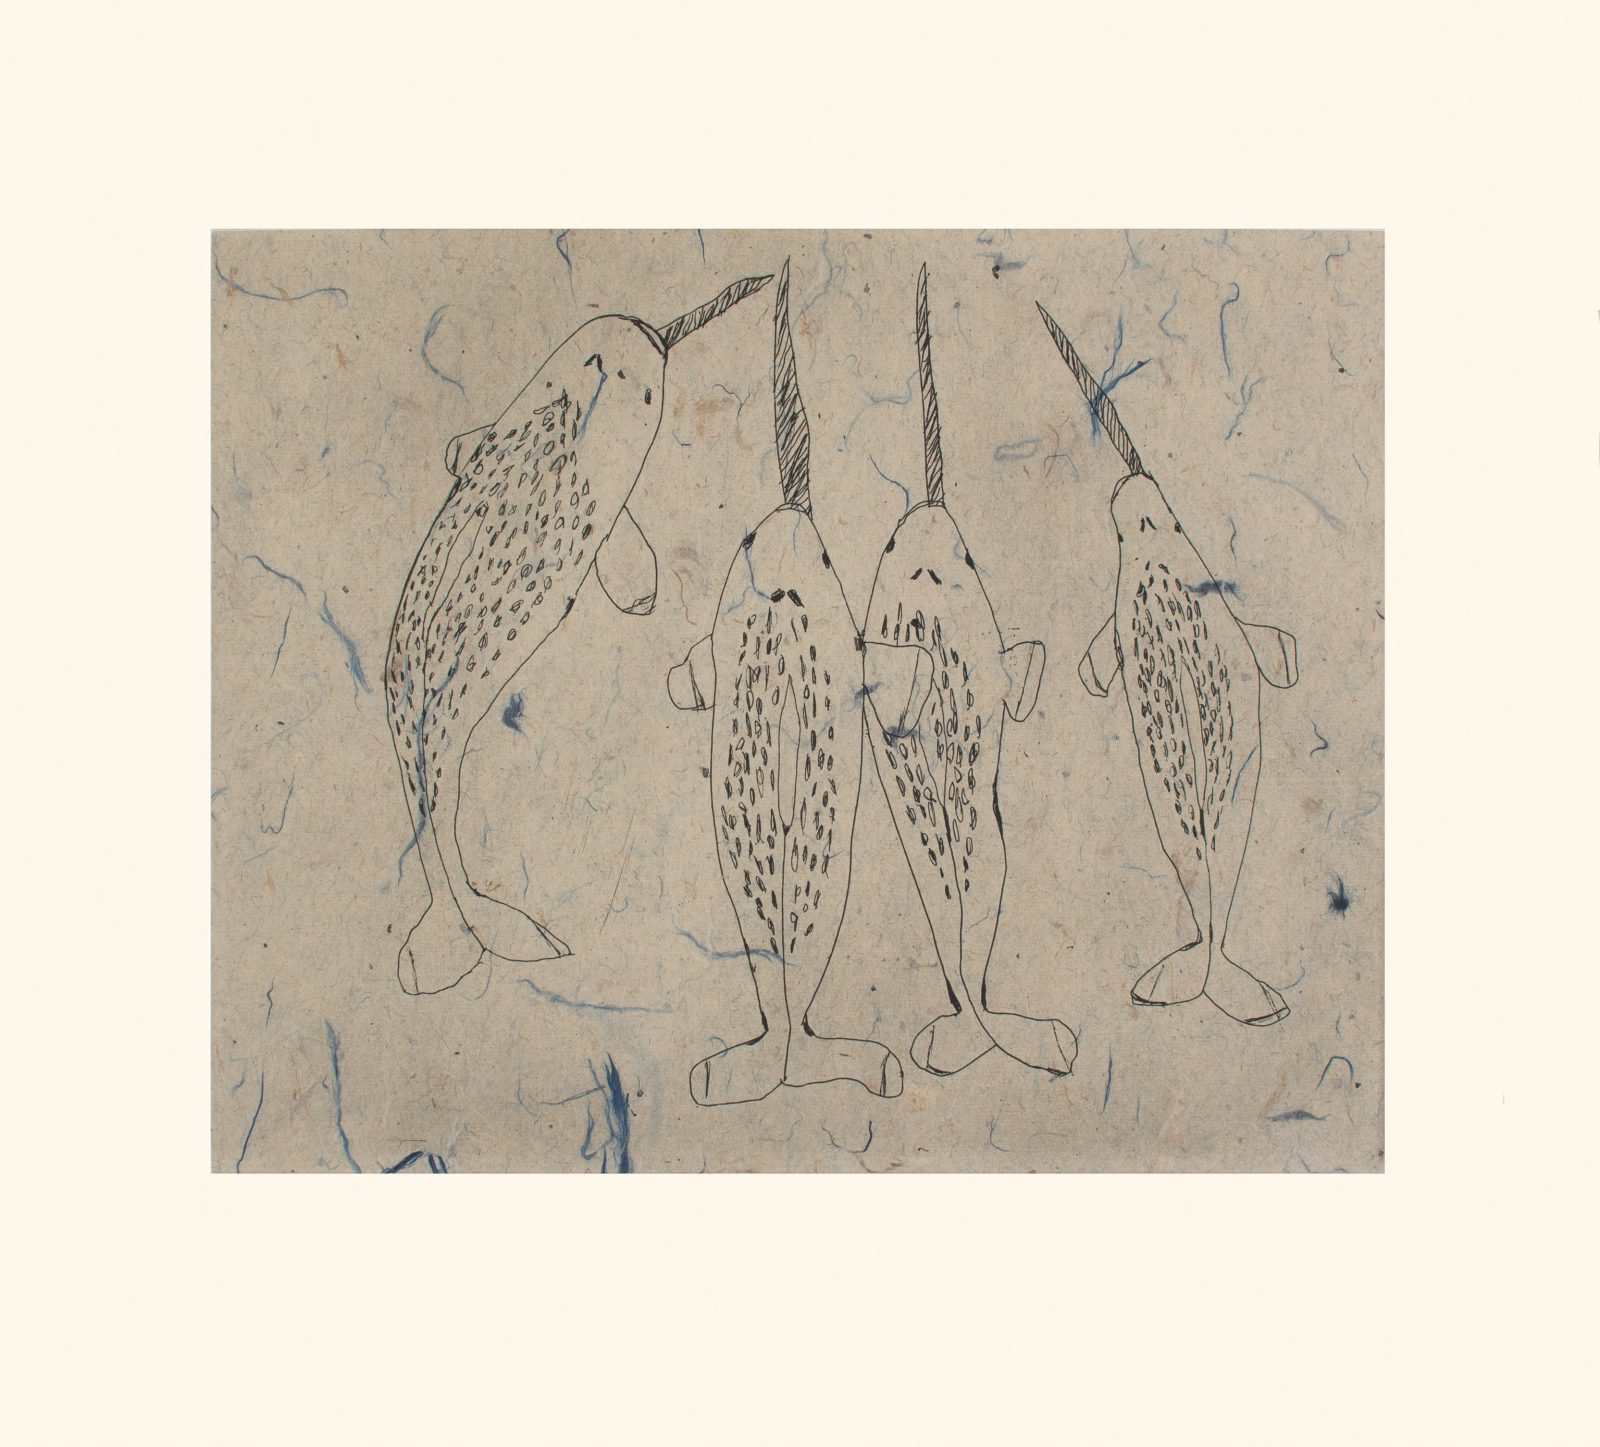 OHITO ASHOONA Blessing of Narwhals Cape Dorset Print 2021